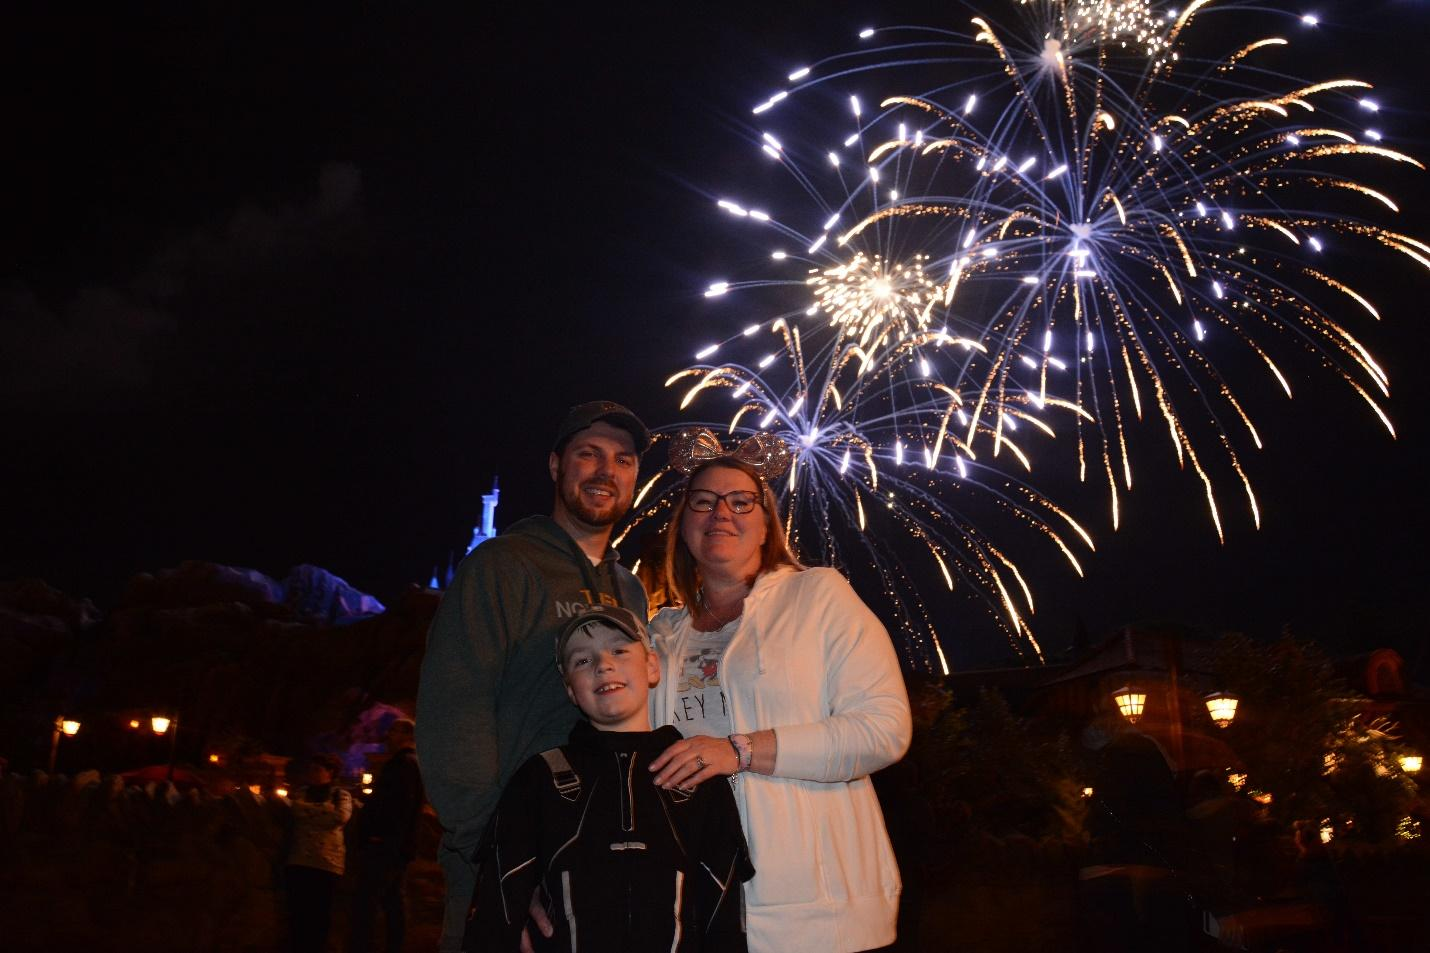 Disney's Memory Maker photo magic of capturing a family and the castle fireworks!